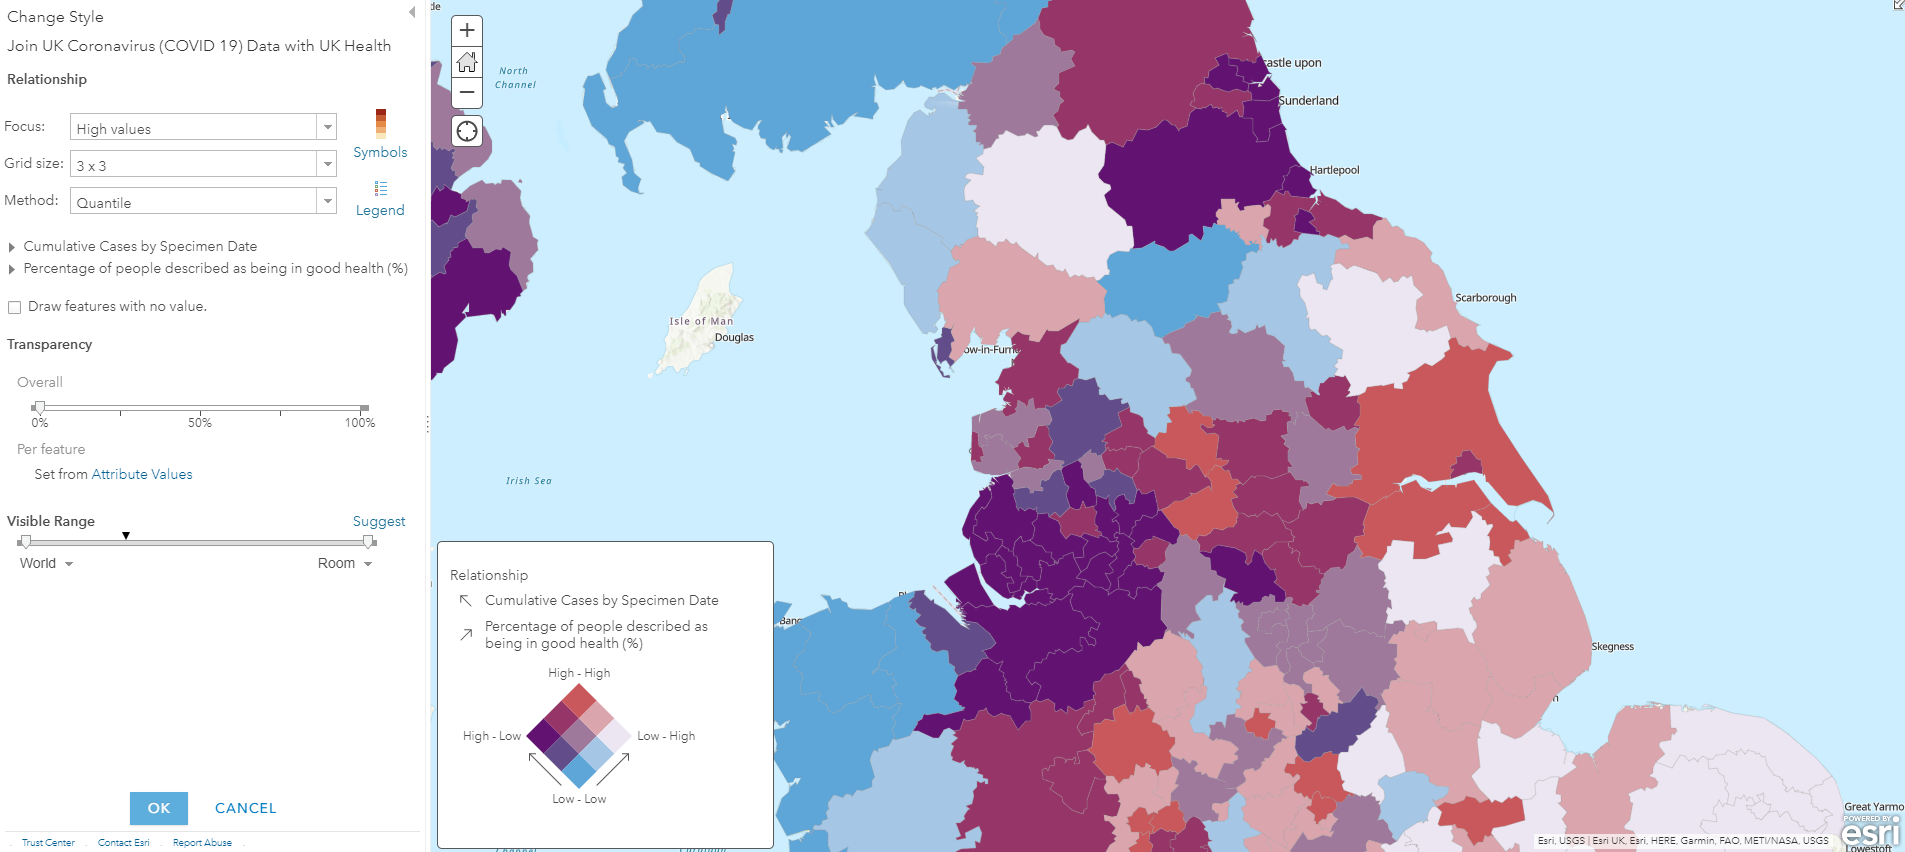 A bivariate map showing the relative value of two statistics for local authority areas